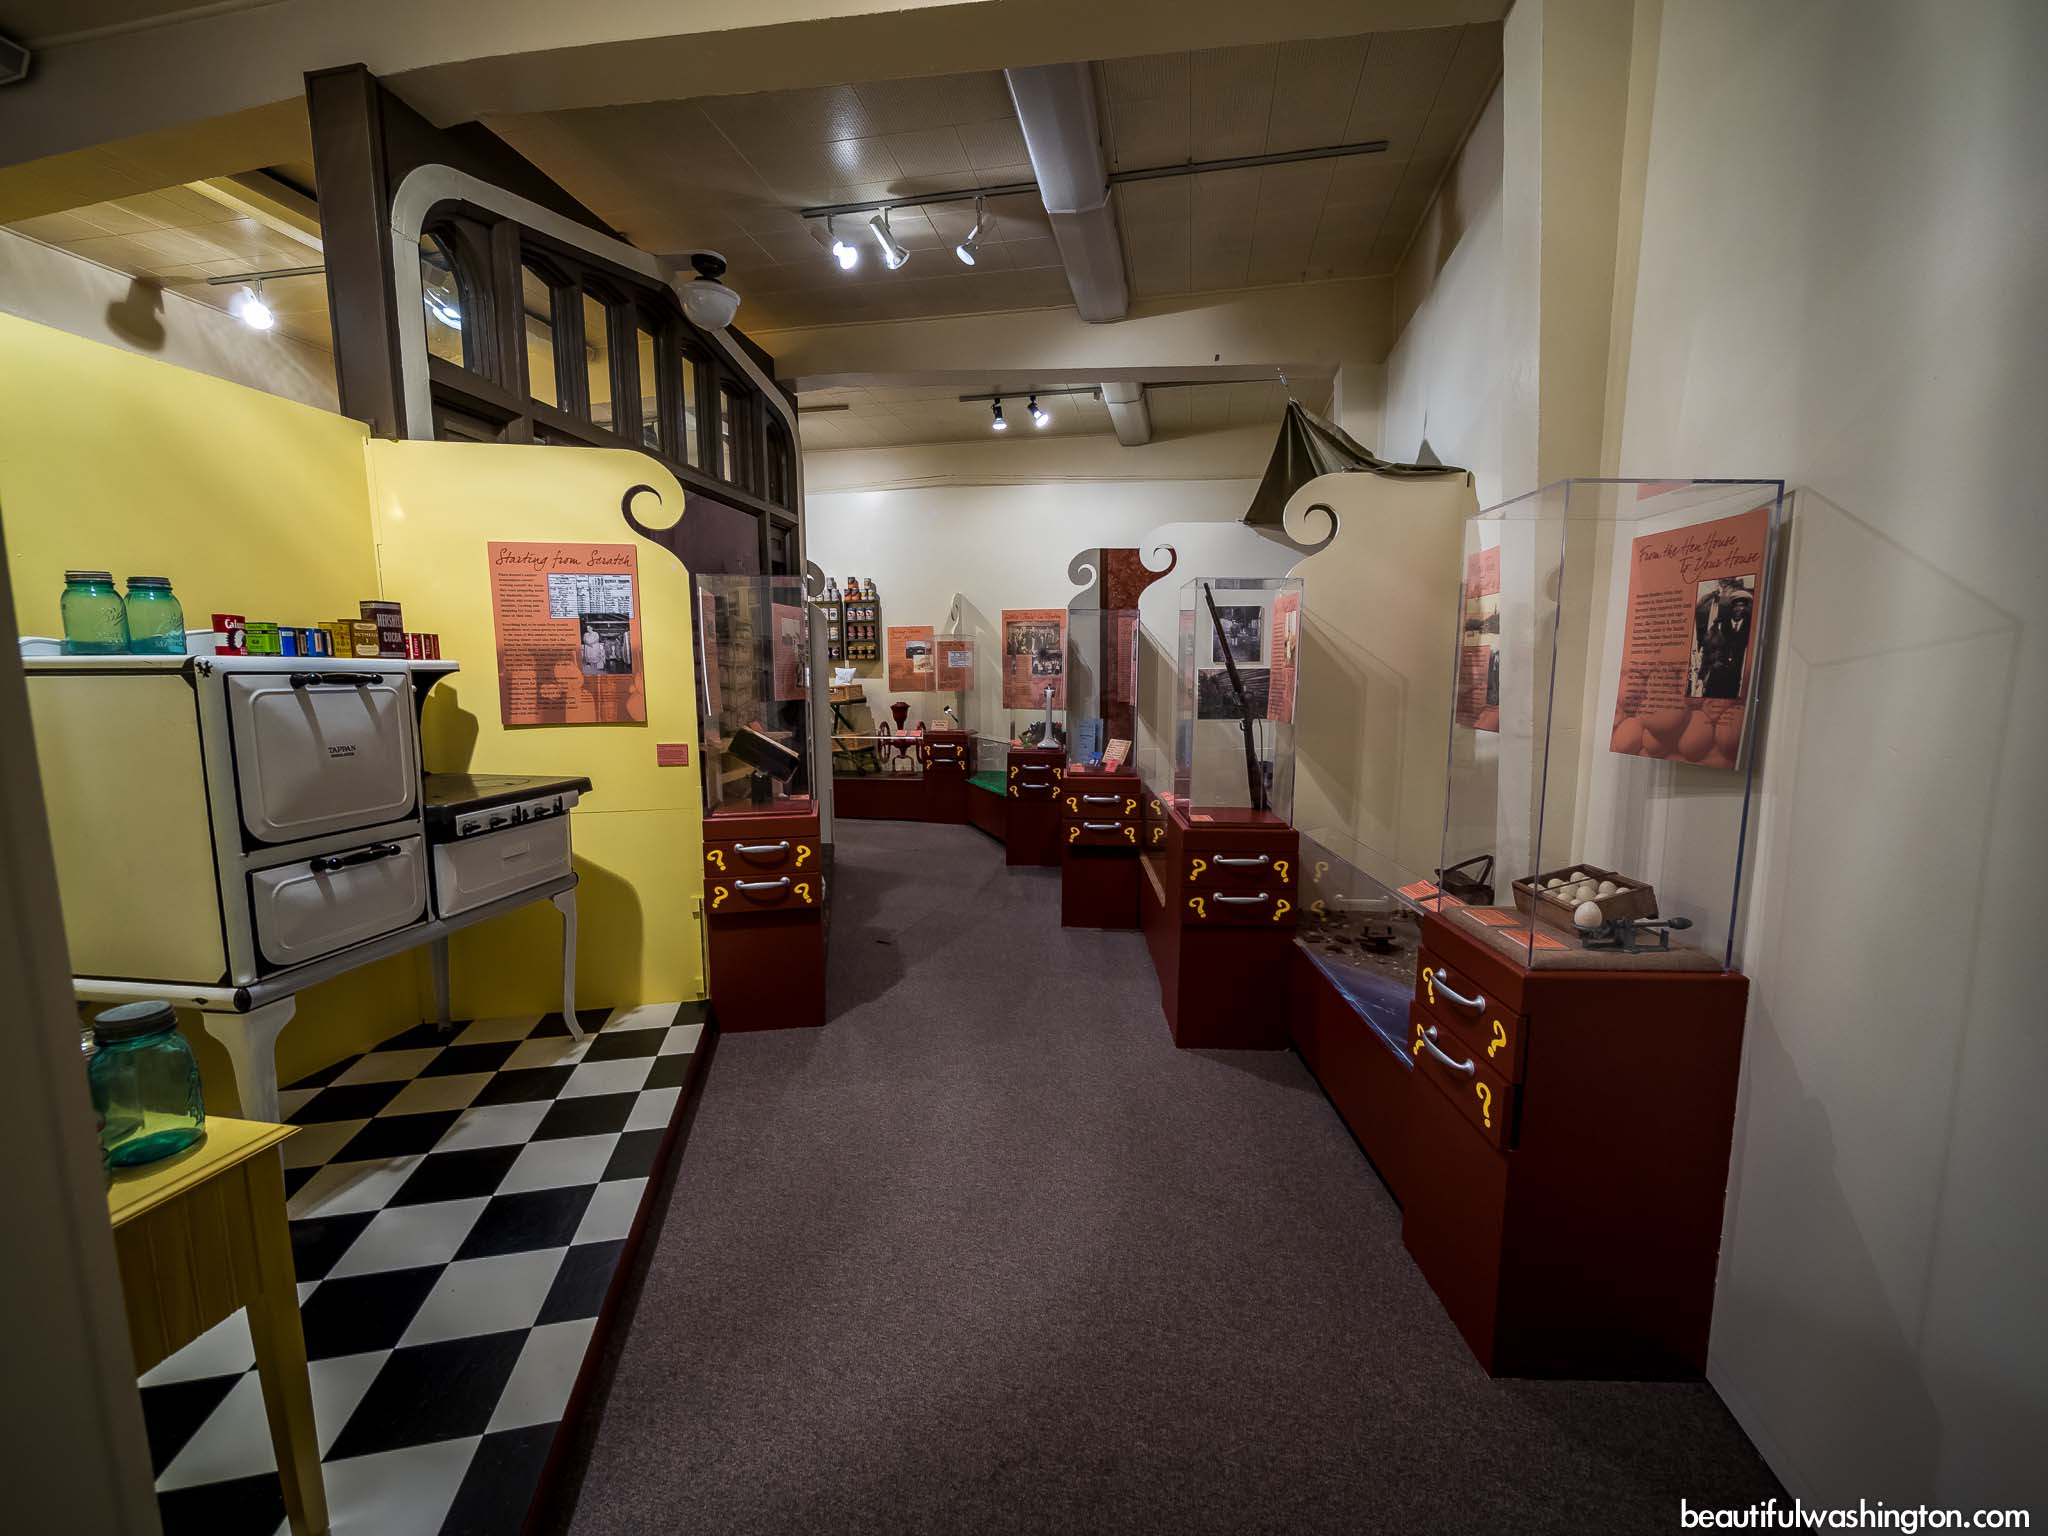 Another interior shot of the museum.